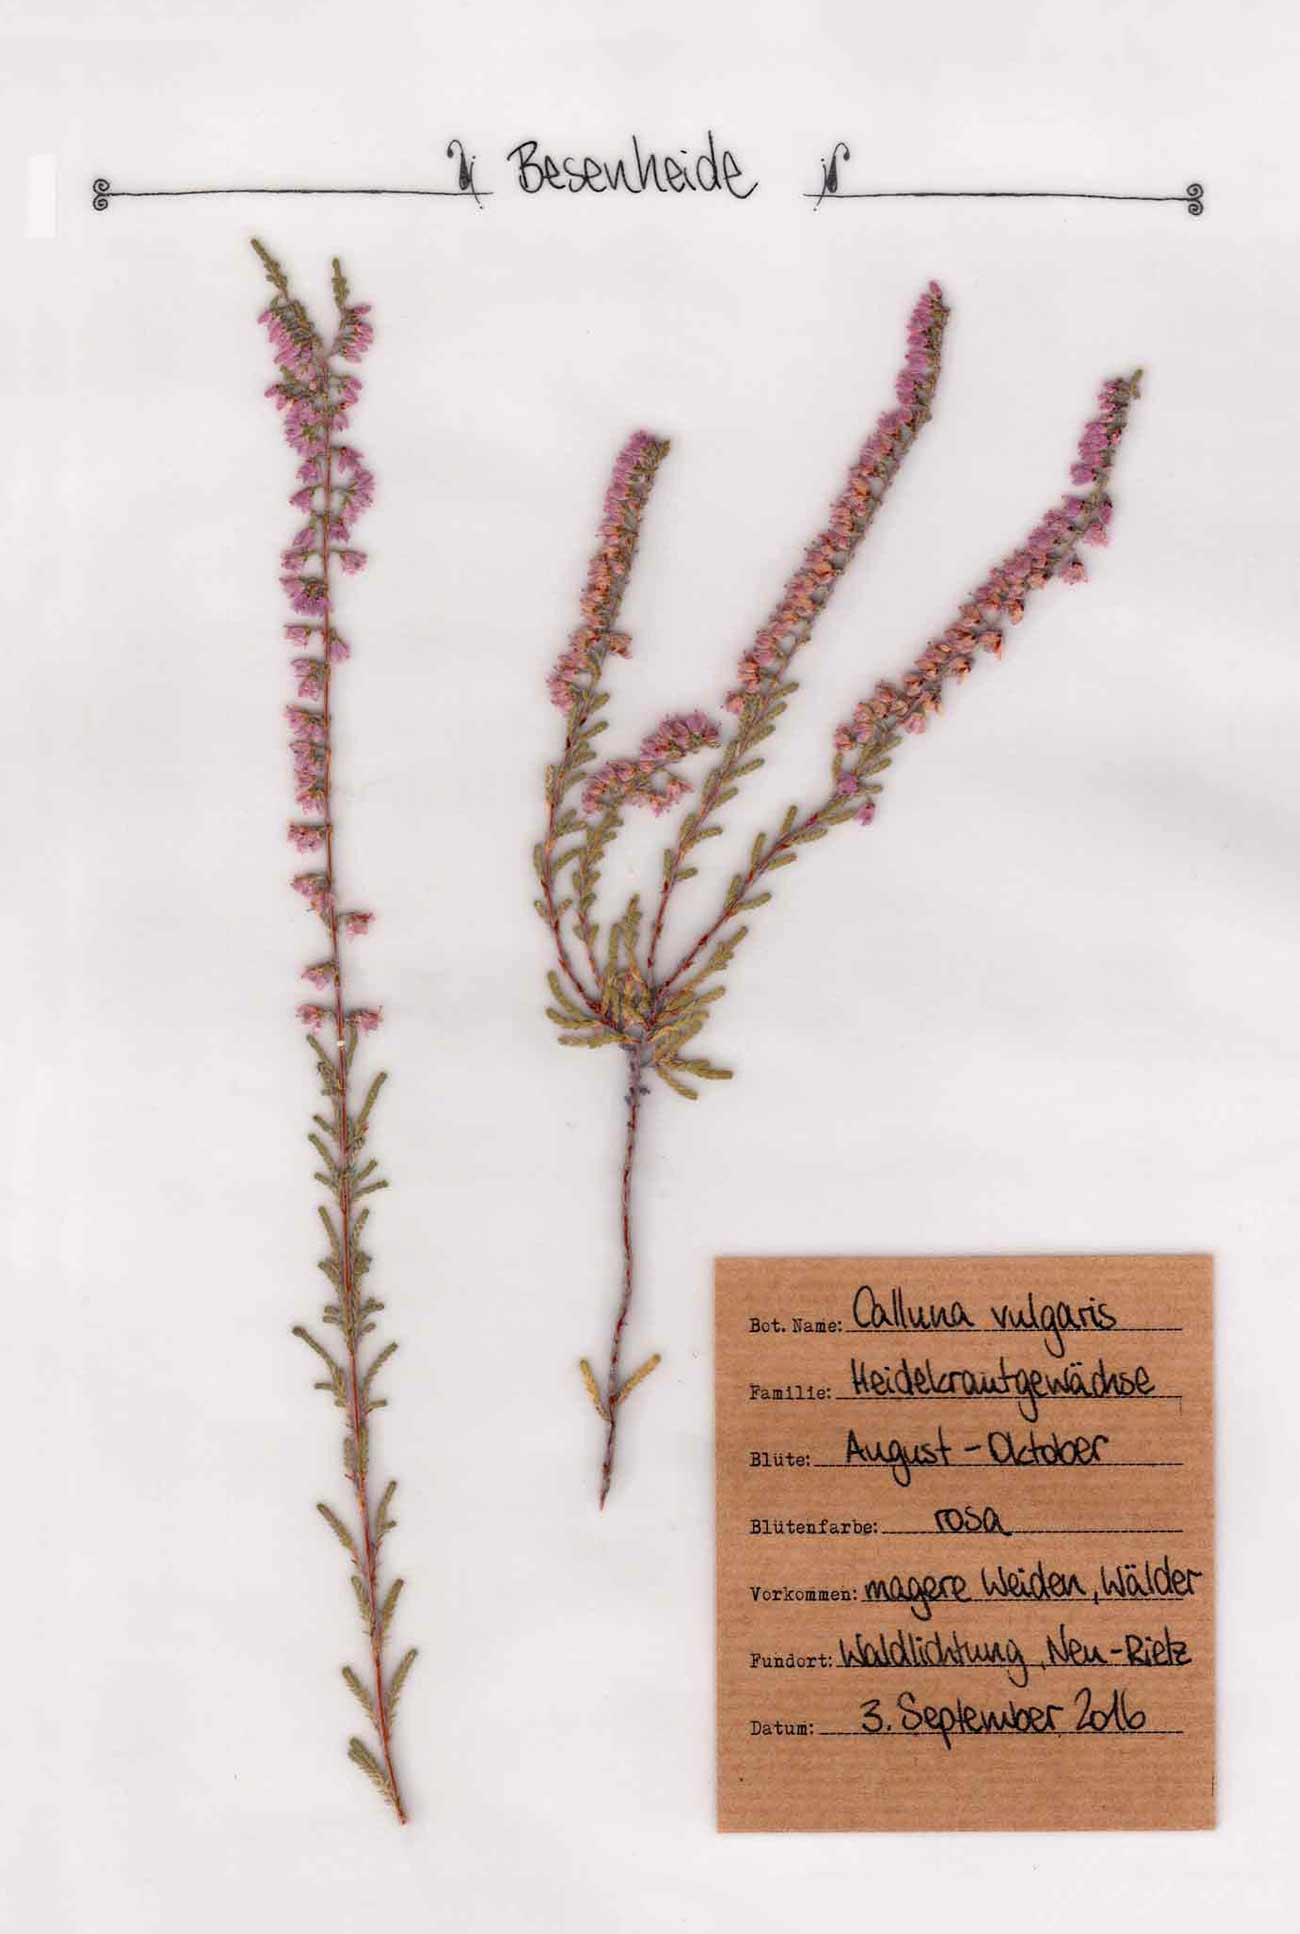 Besenheide im Digitalen Herbarium – Pflanzenportrait im digitalen Herbarium – Herbal Hunter